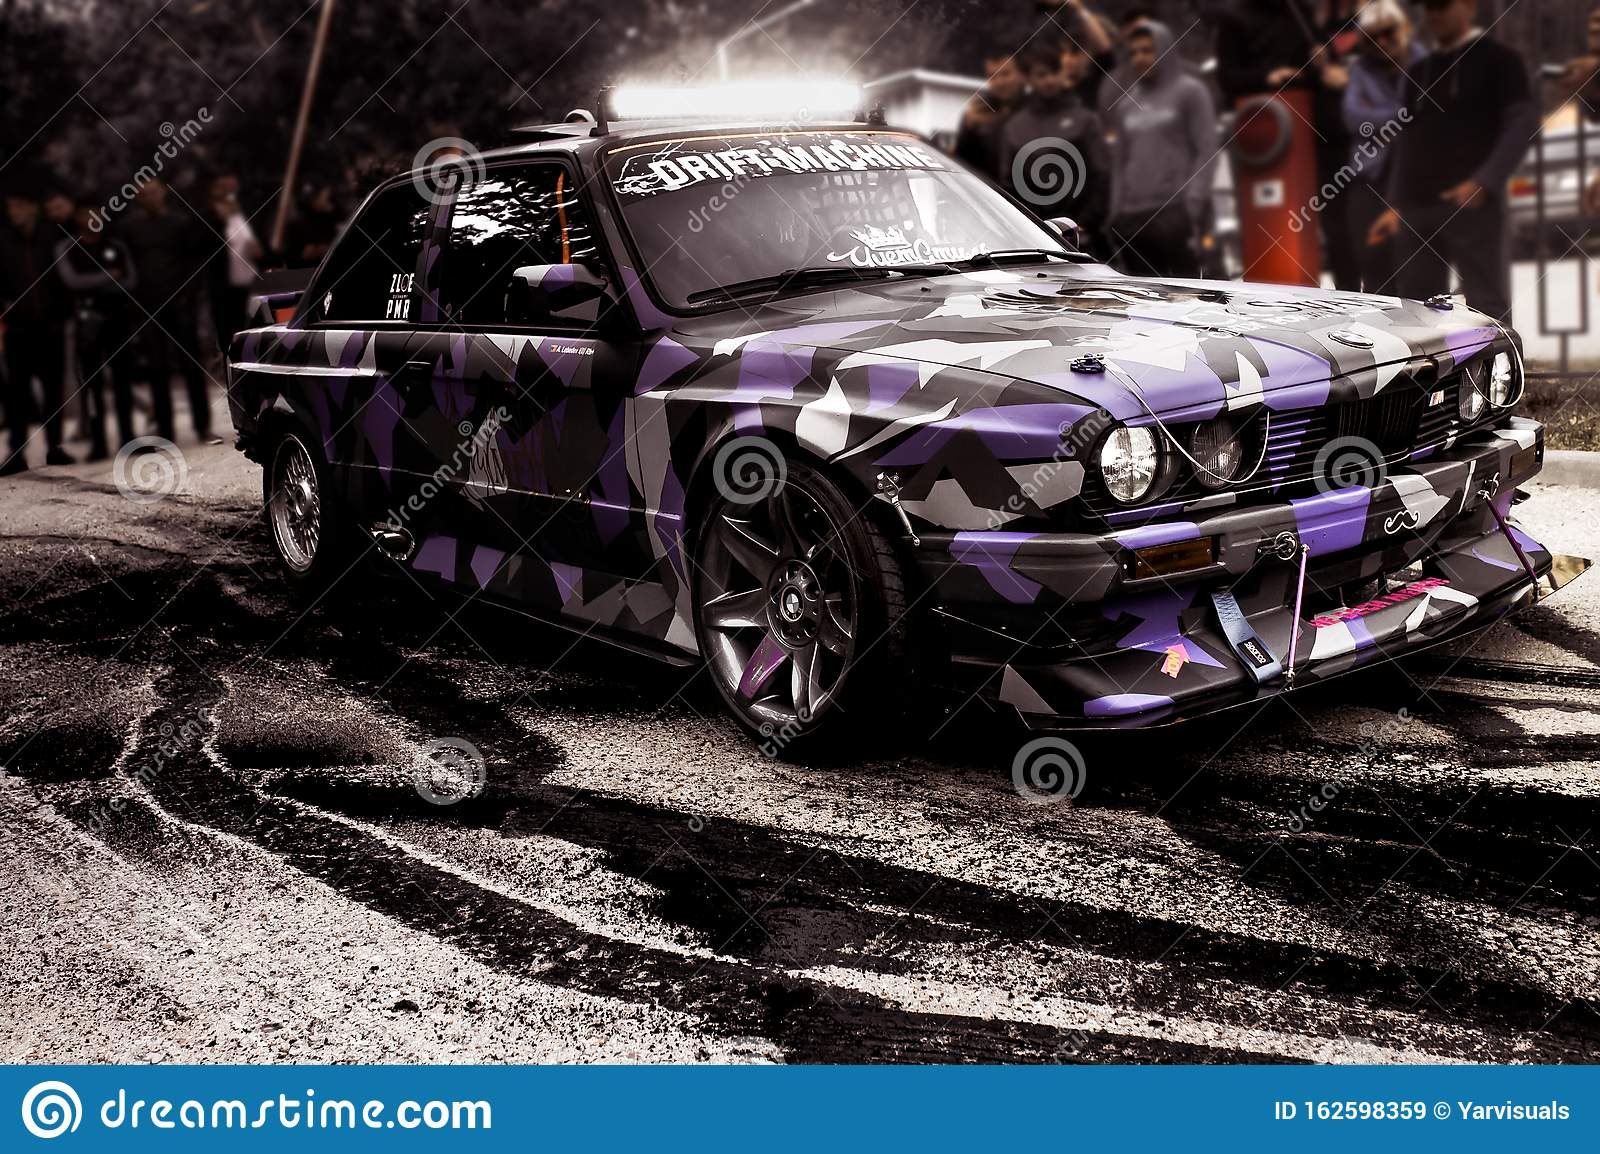 Moldova 25 09 2019 Sport Modern Stance E30 Bmw Car Racing Car Drifting With Smoke Drift Burnout Big Clouds With Editorial Stock Image Image Of Motion Black 162598359